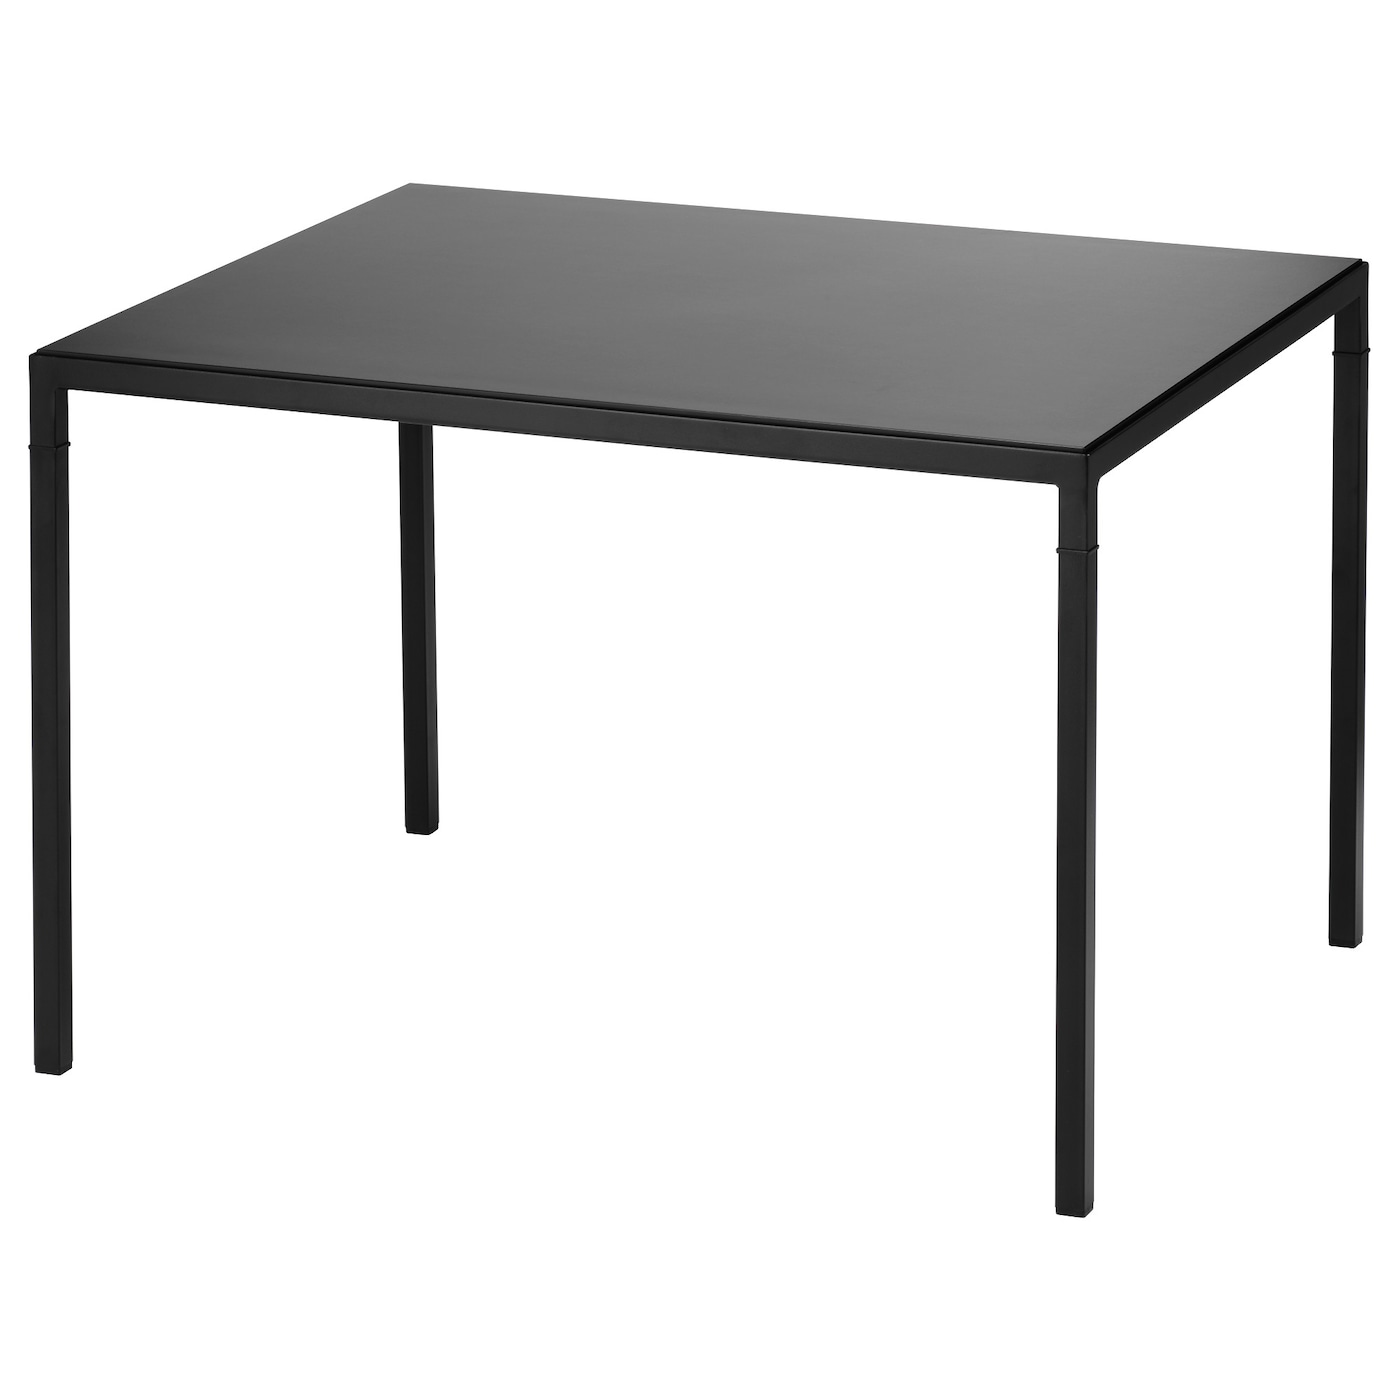 nyboda table basse avec plateau r versible noir beige 75x60x50 cm ikea. Black Bedroom Furniture Sets. Home Design Ideas